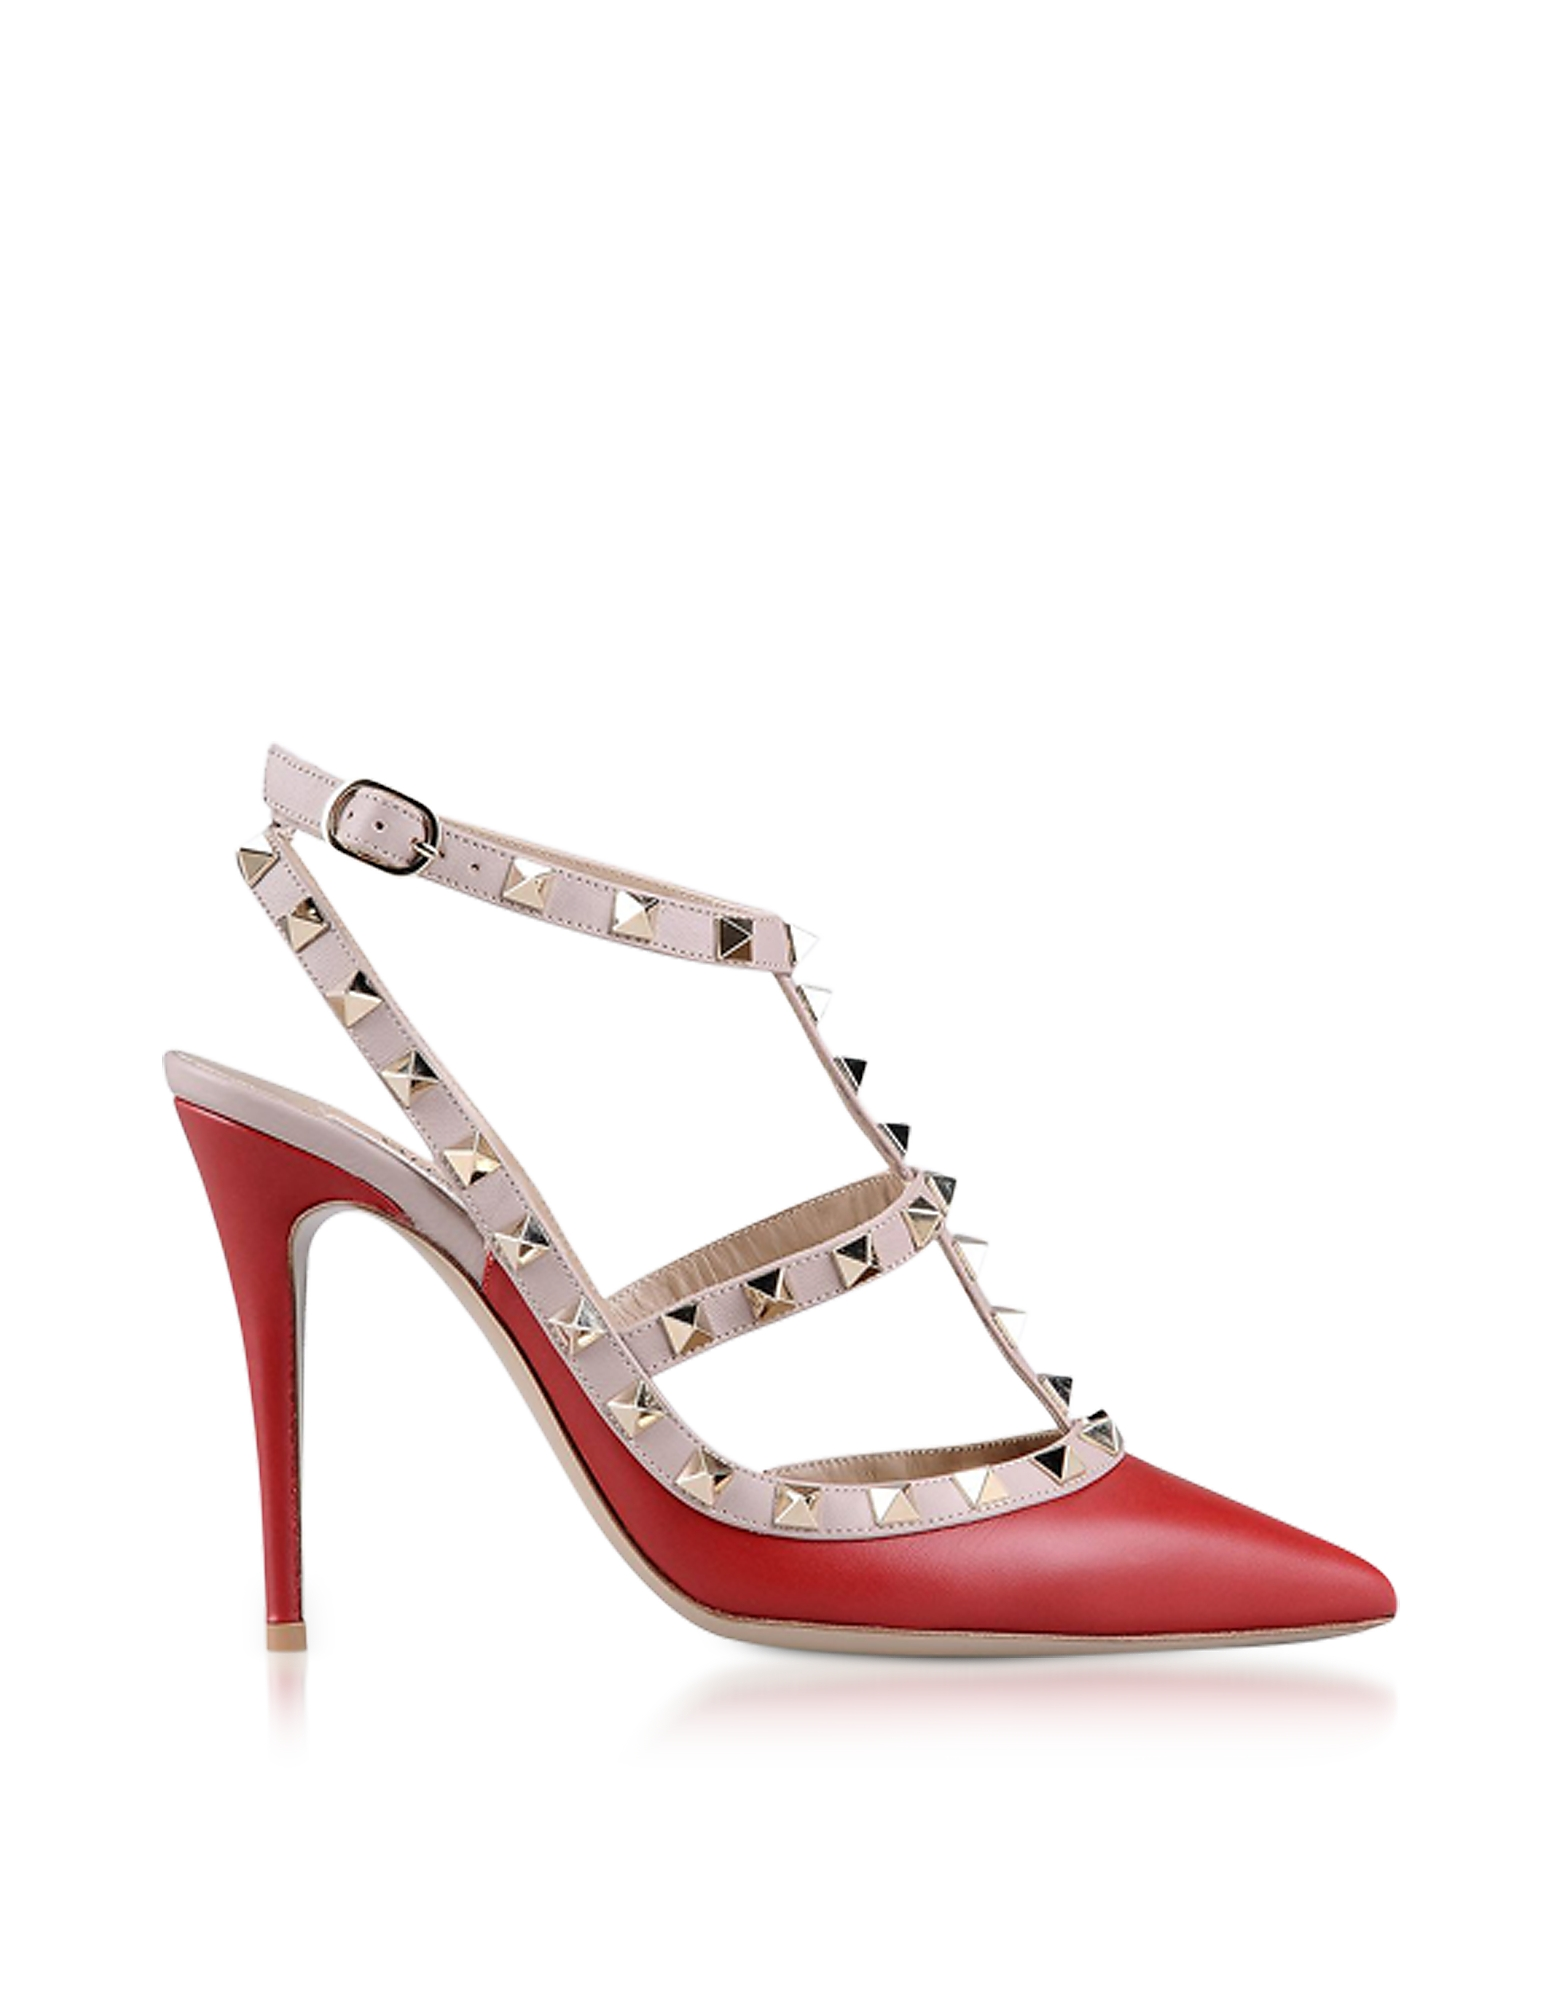 Valentino Shoes, Red Rockstud Ankle Strap Pump